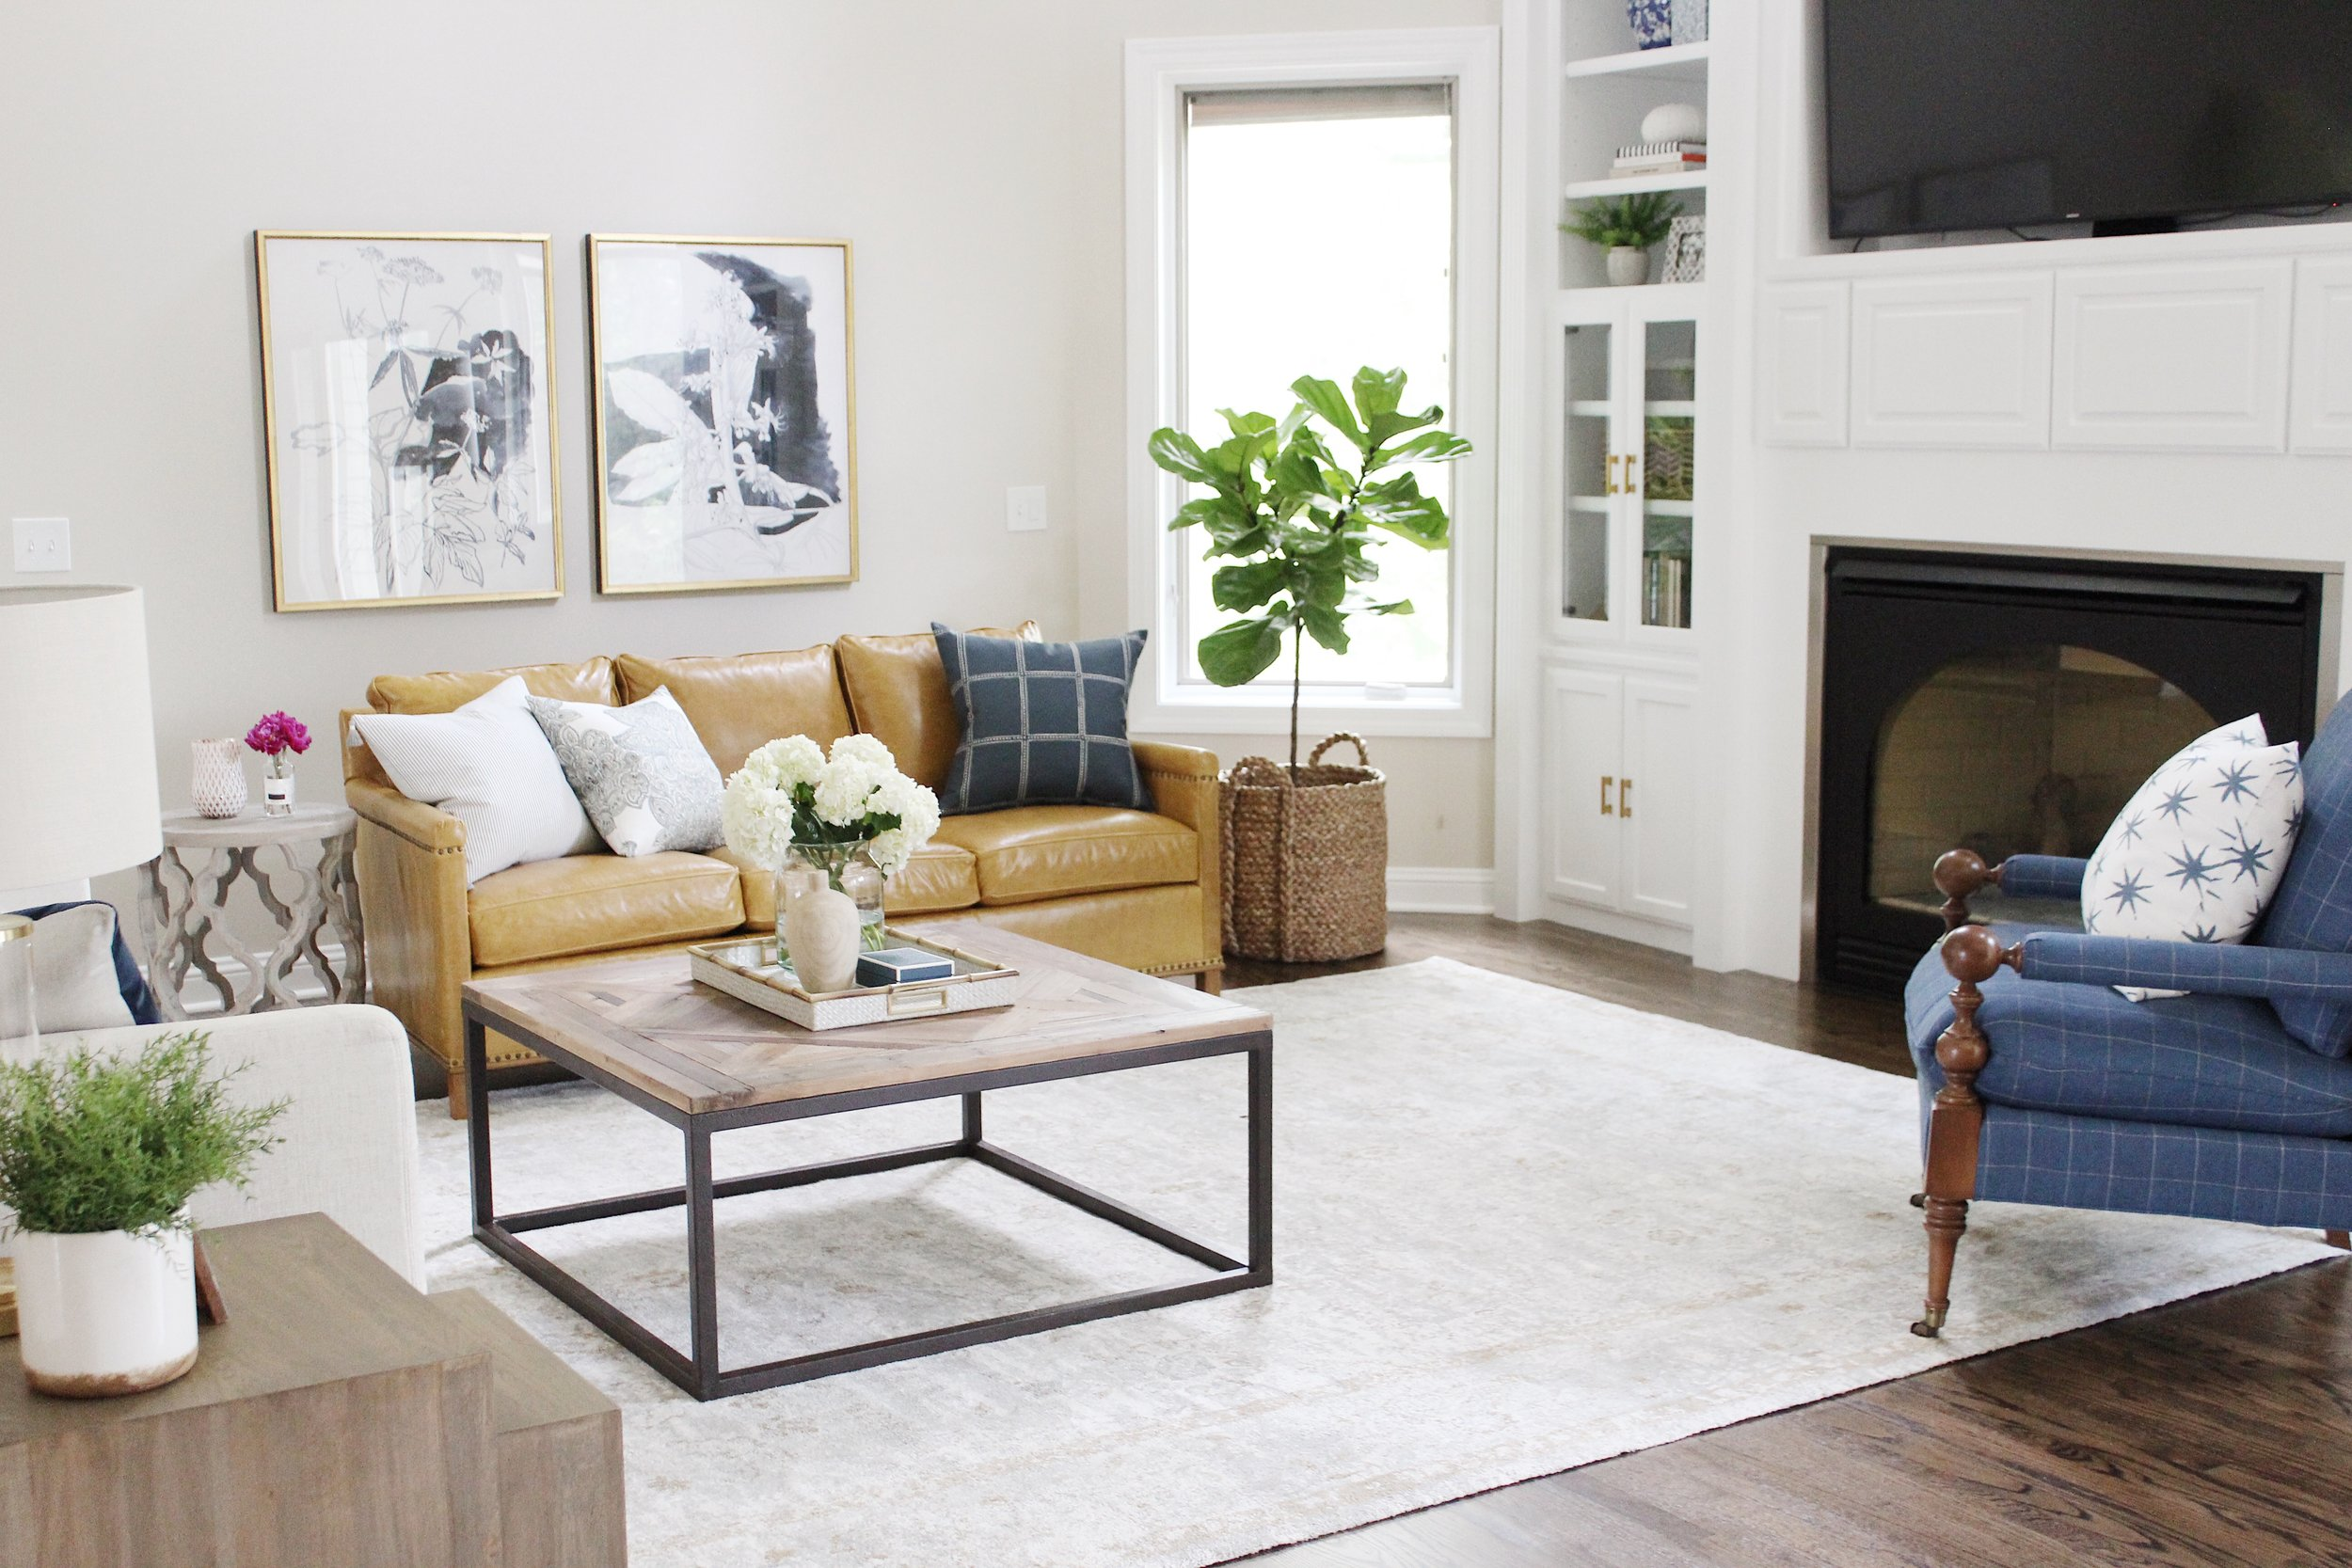 AFTER...The space was transformed into a  bright,classic family room  with broad appeal. The flooring was updated, while fresh paint on the walls, trim, built-ins and staircase improved the home's aesthetic-- and market-- value.